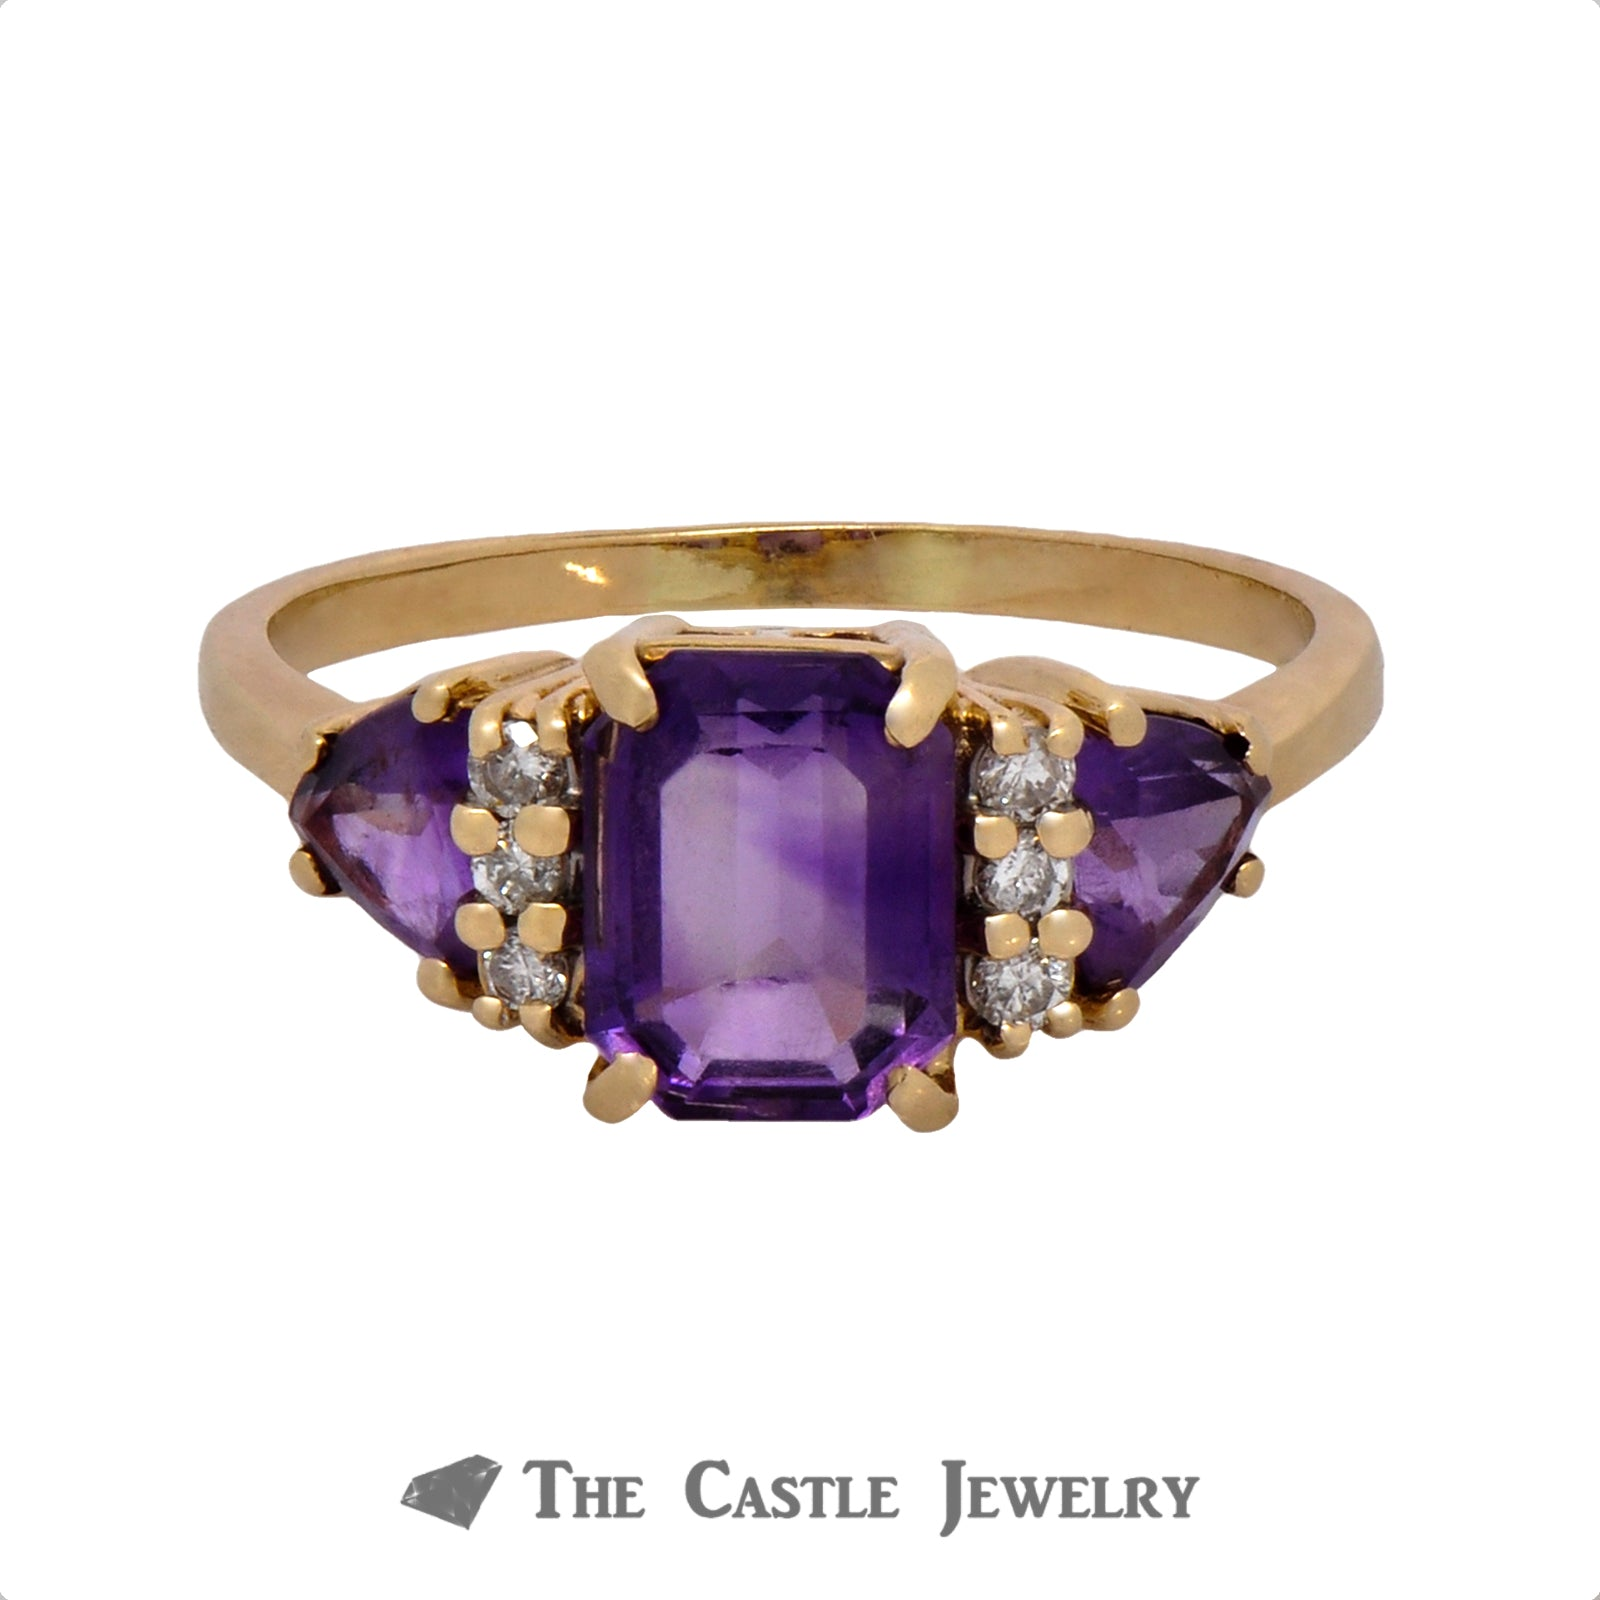 Emerald Cut Amethyst Ring with Trillion Cut Amethyst and Round Diamond Accents in 10k Yellow Gold